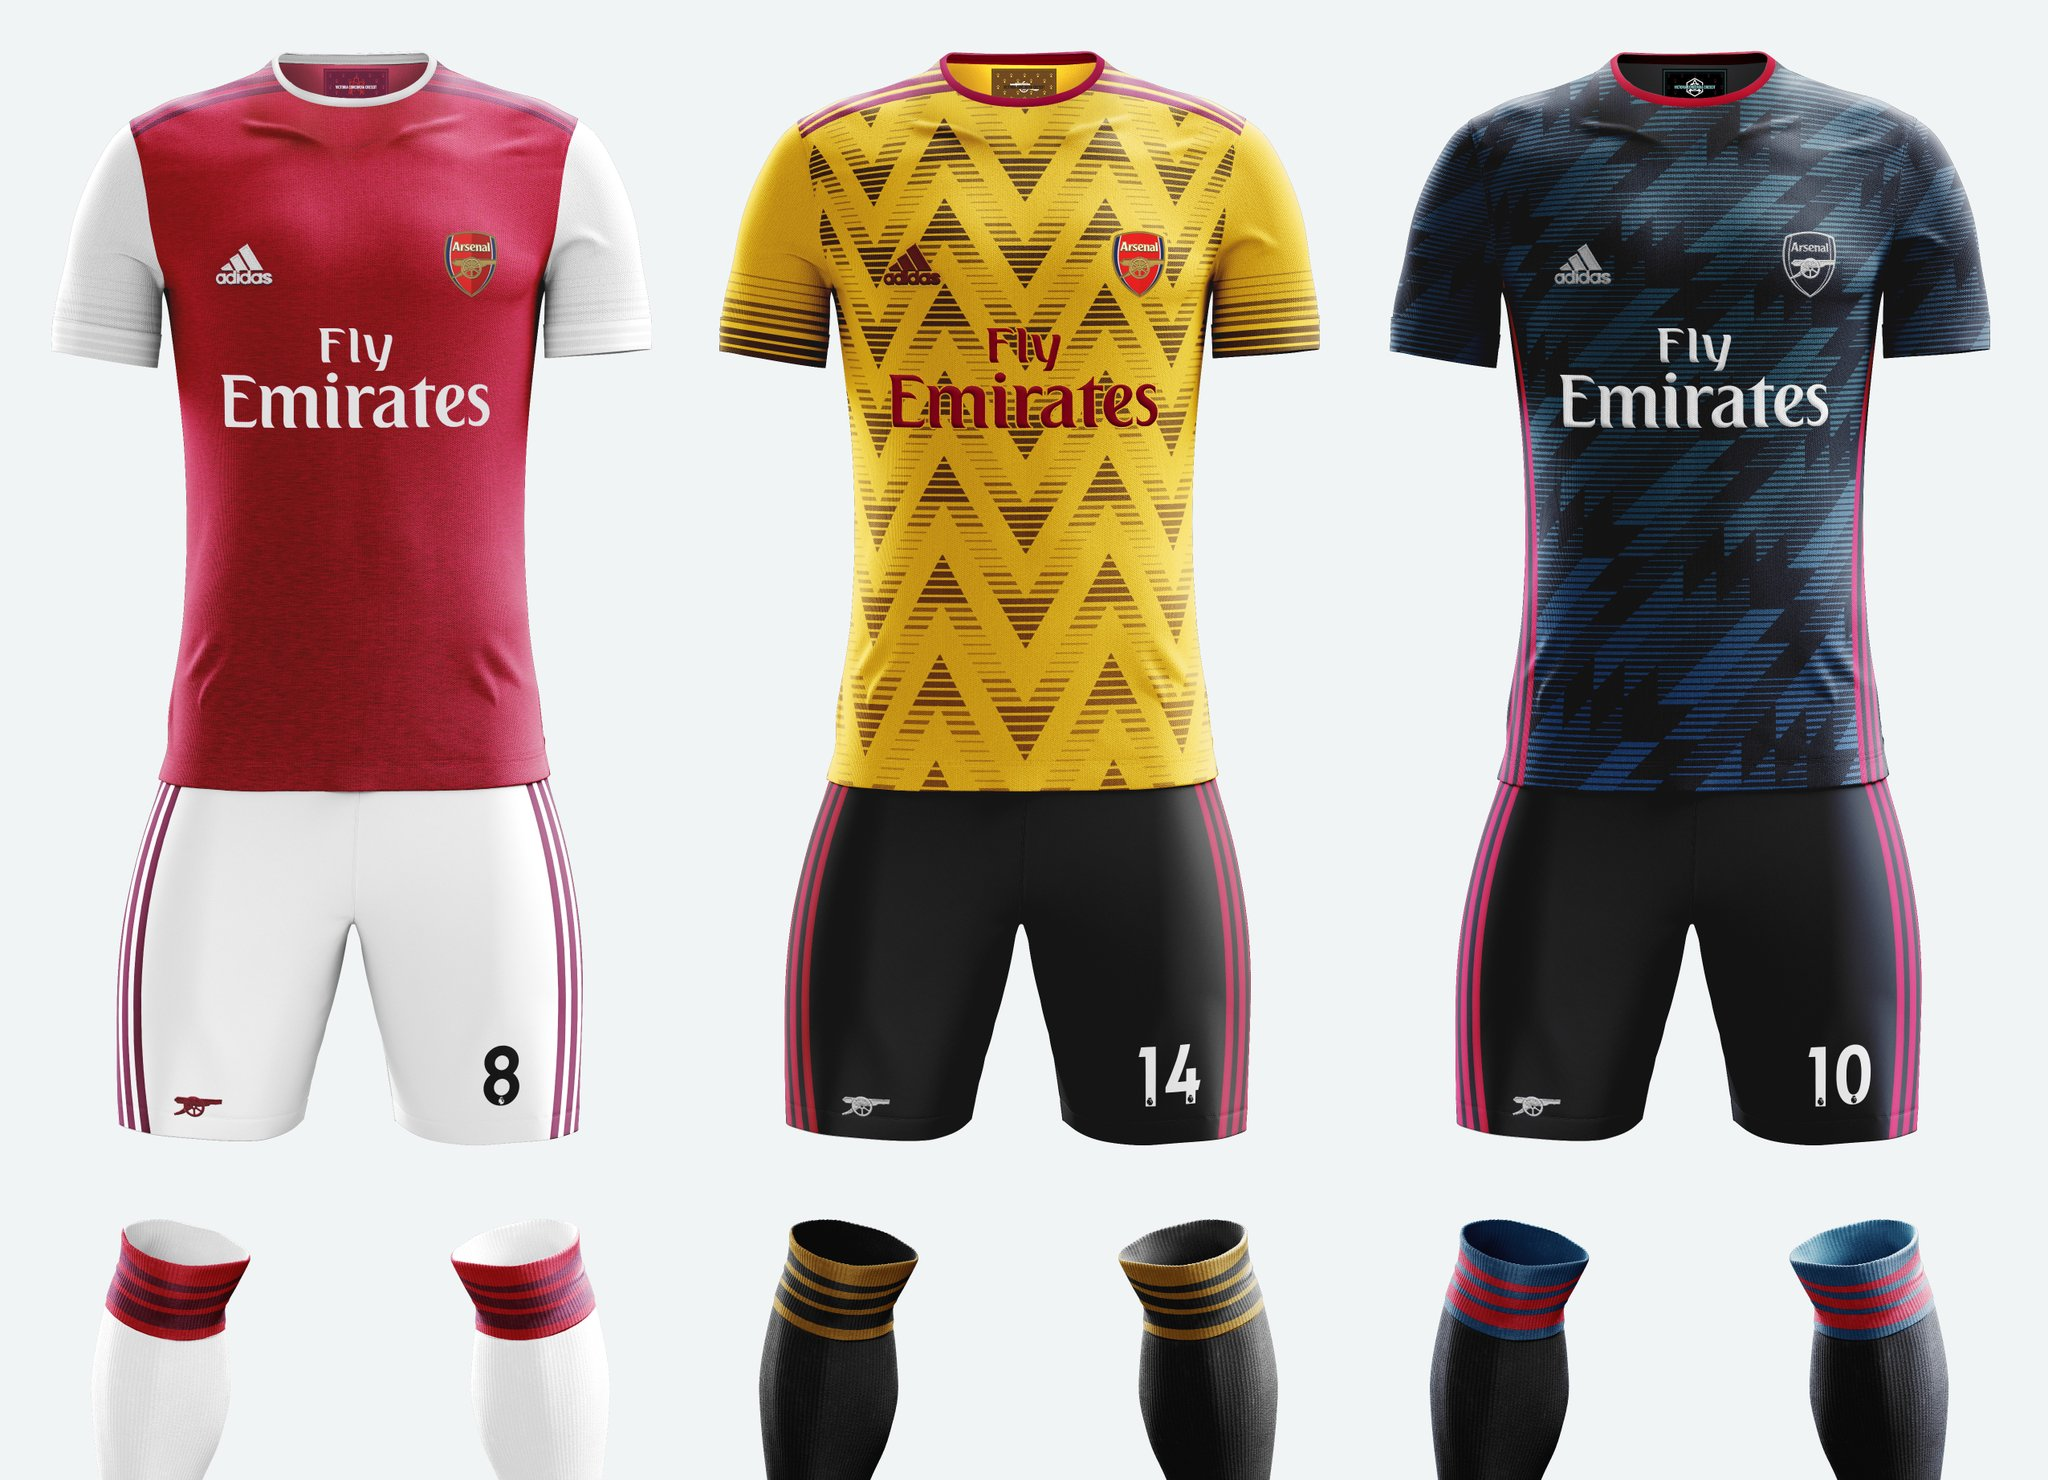 detailed look 7176c f7d4e Arsenal and adidas have agreed a new kit partnership ...